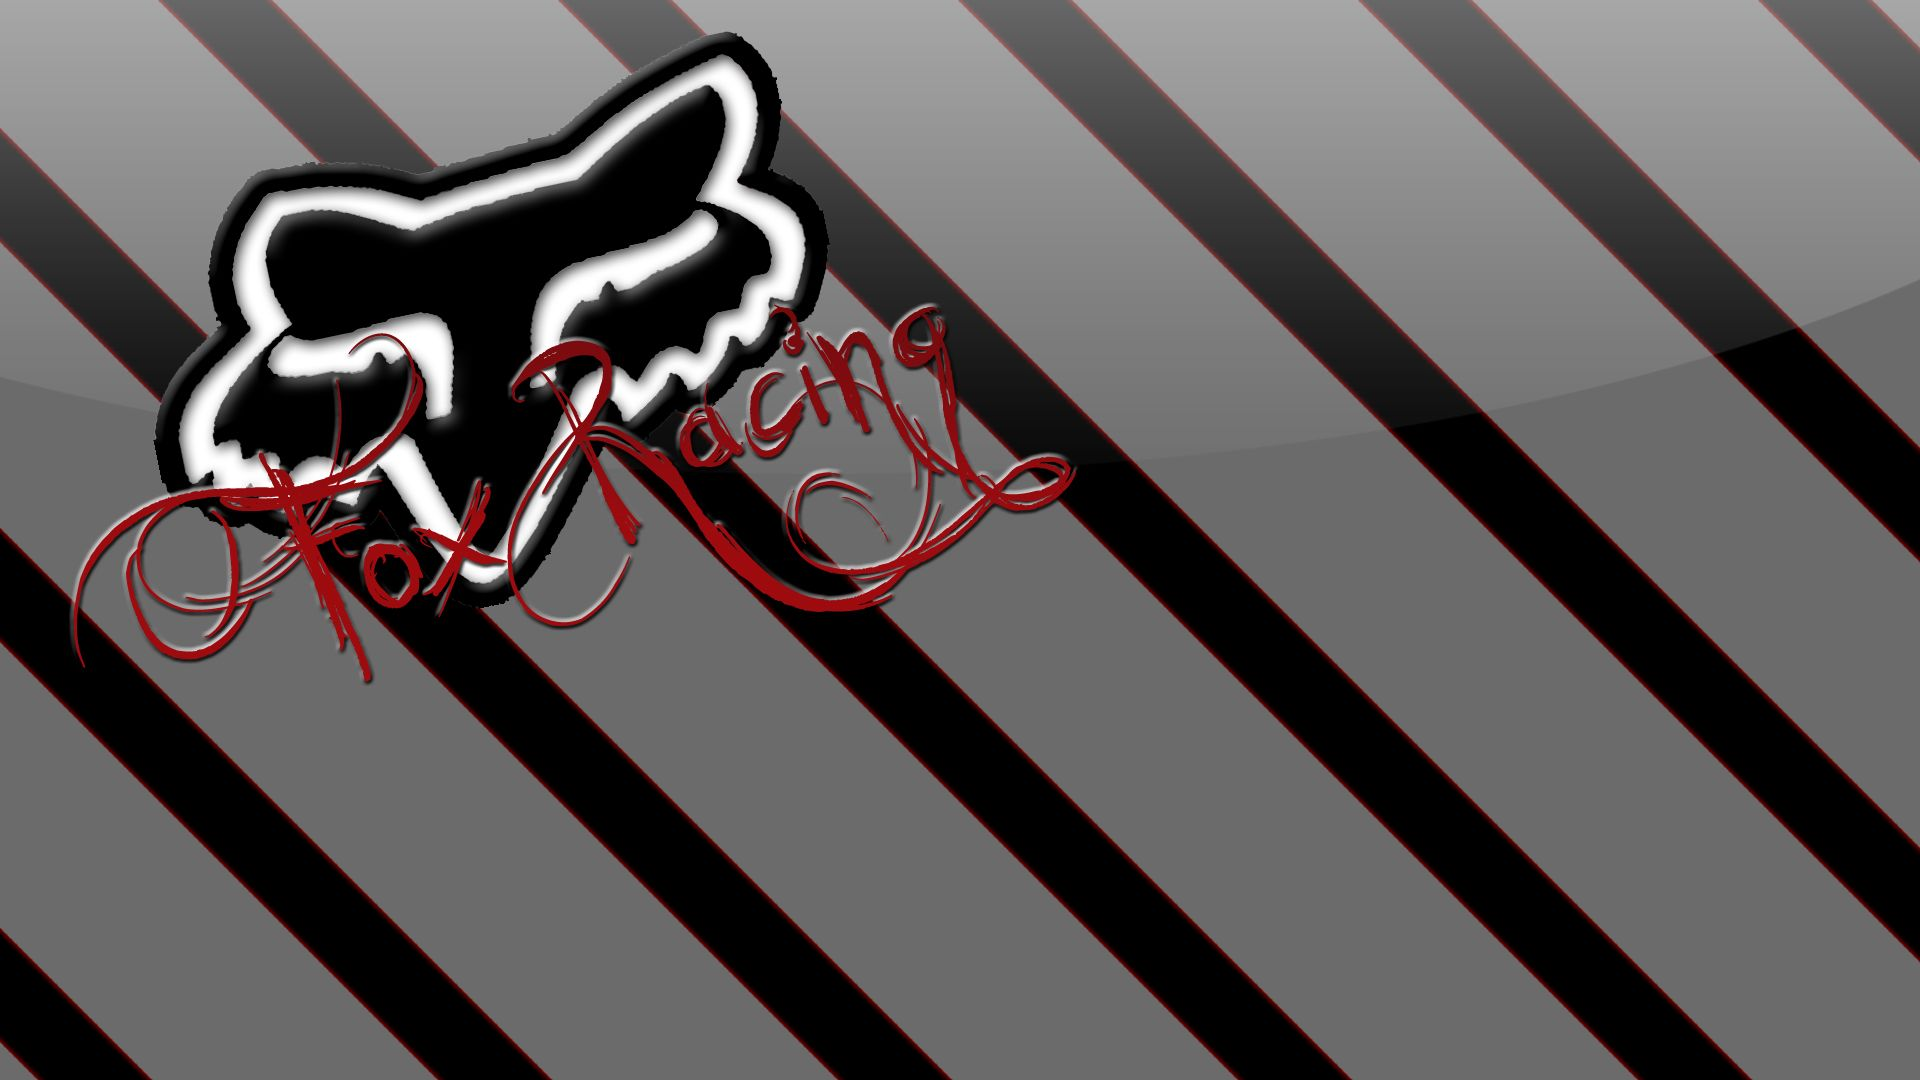 Fox Racing Wallpapers For Iphone Free Download Fox Racing Tattoos Fox Racing Fox Racing Logo